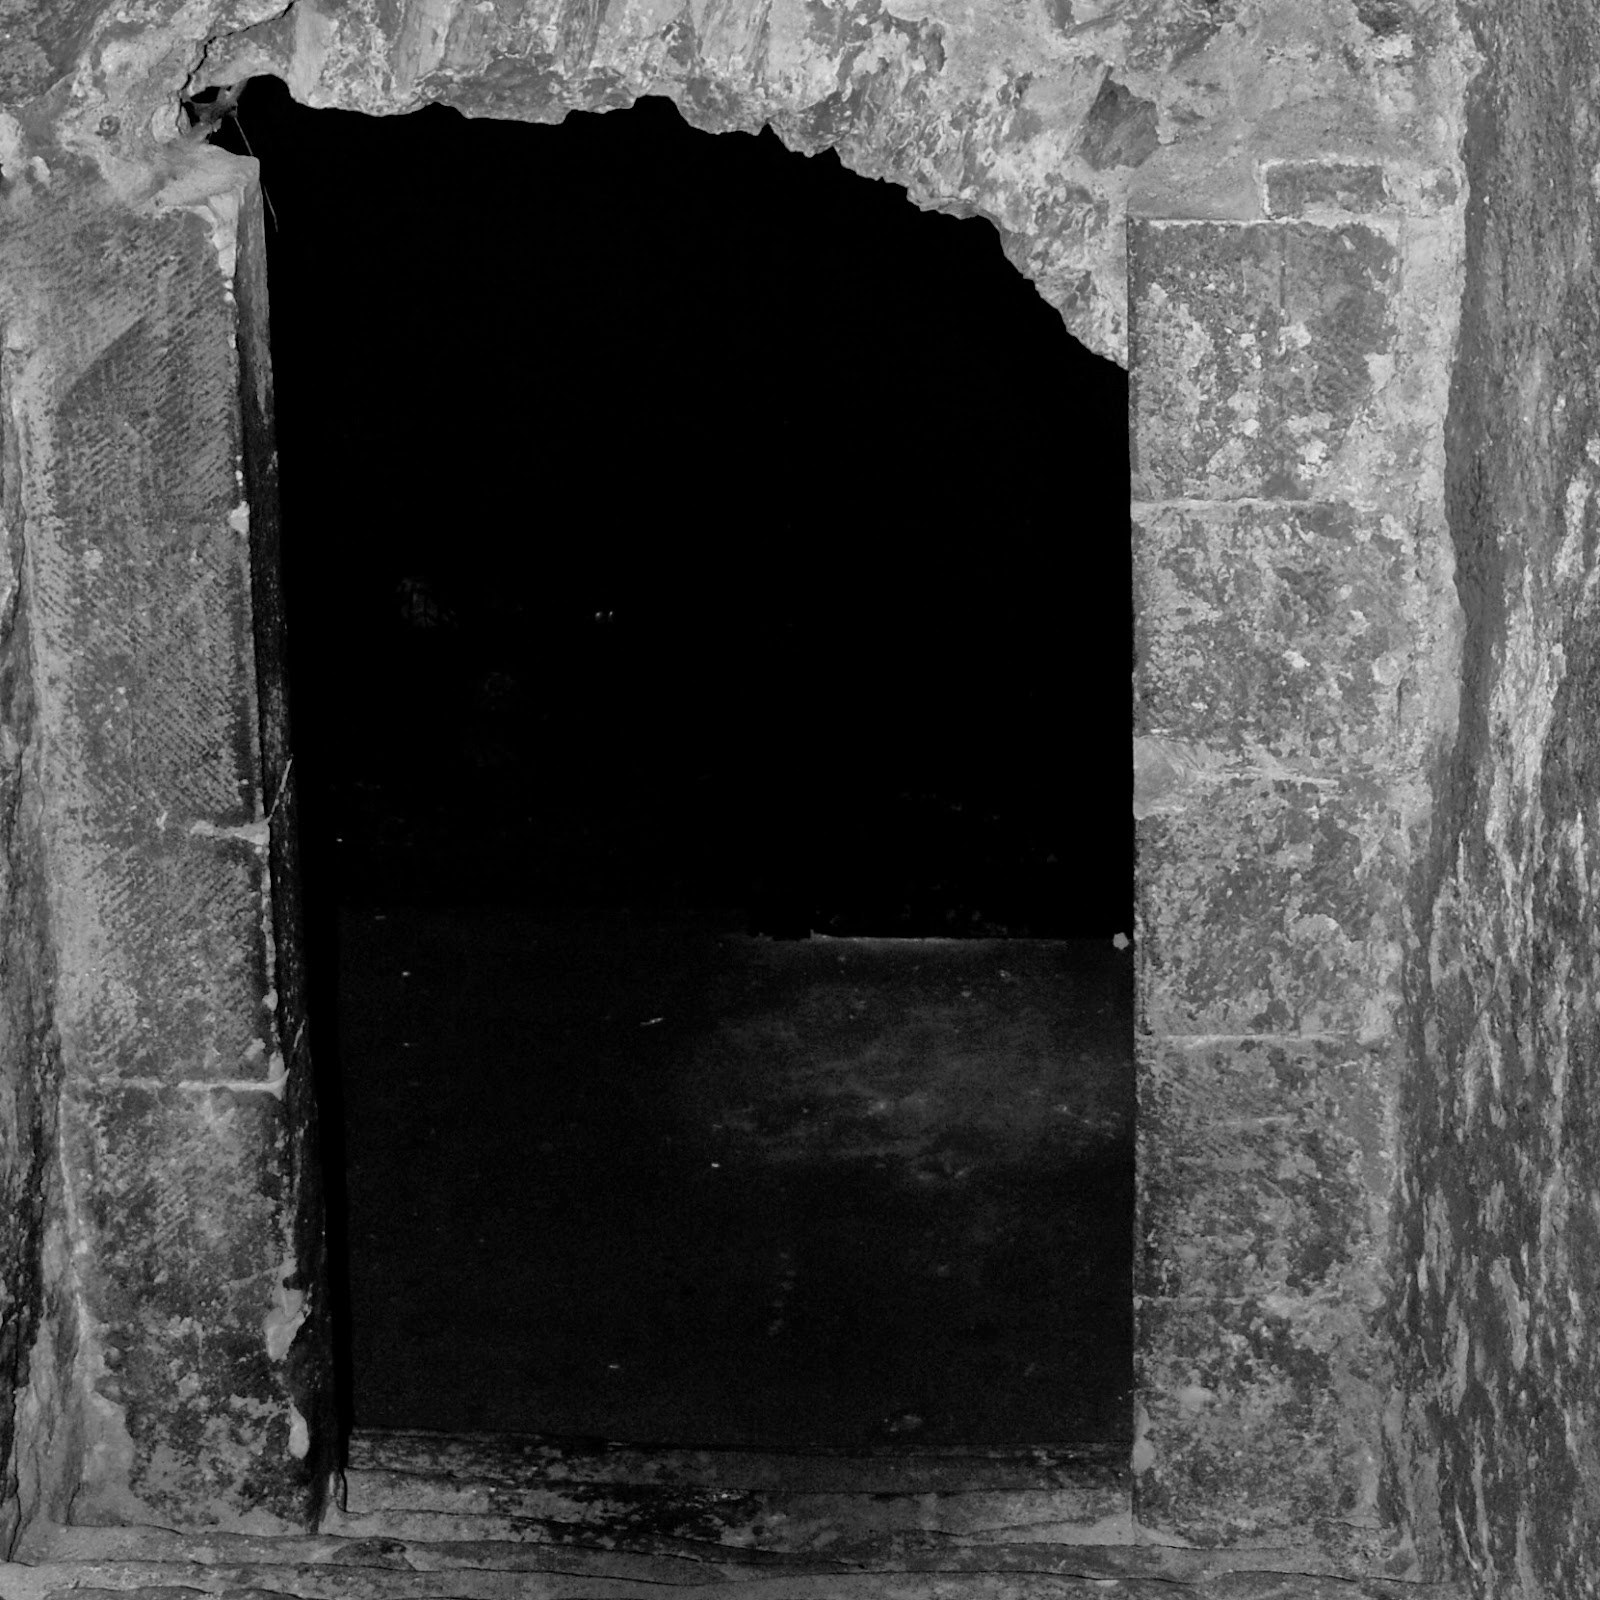 Tunnel in the dungeons of Edinburgh Castle